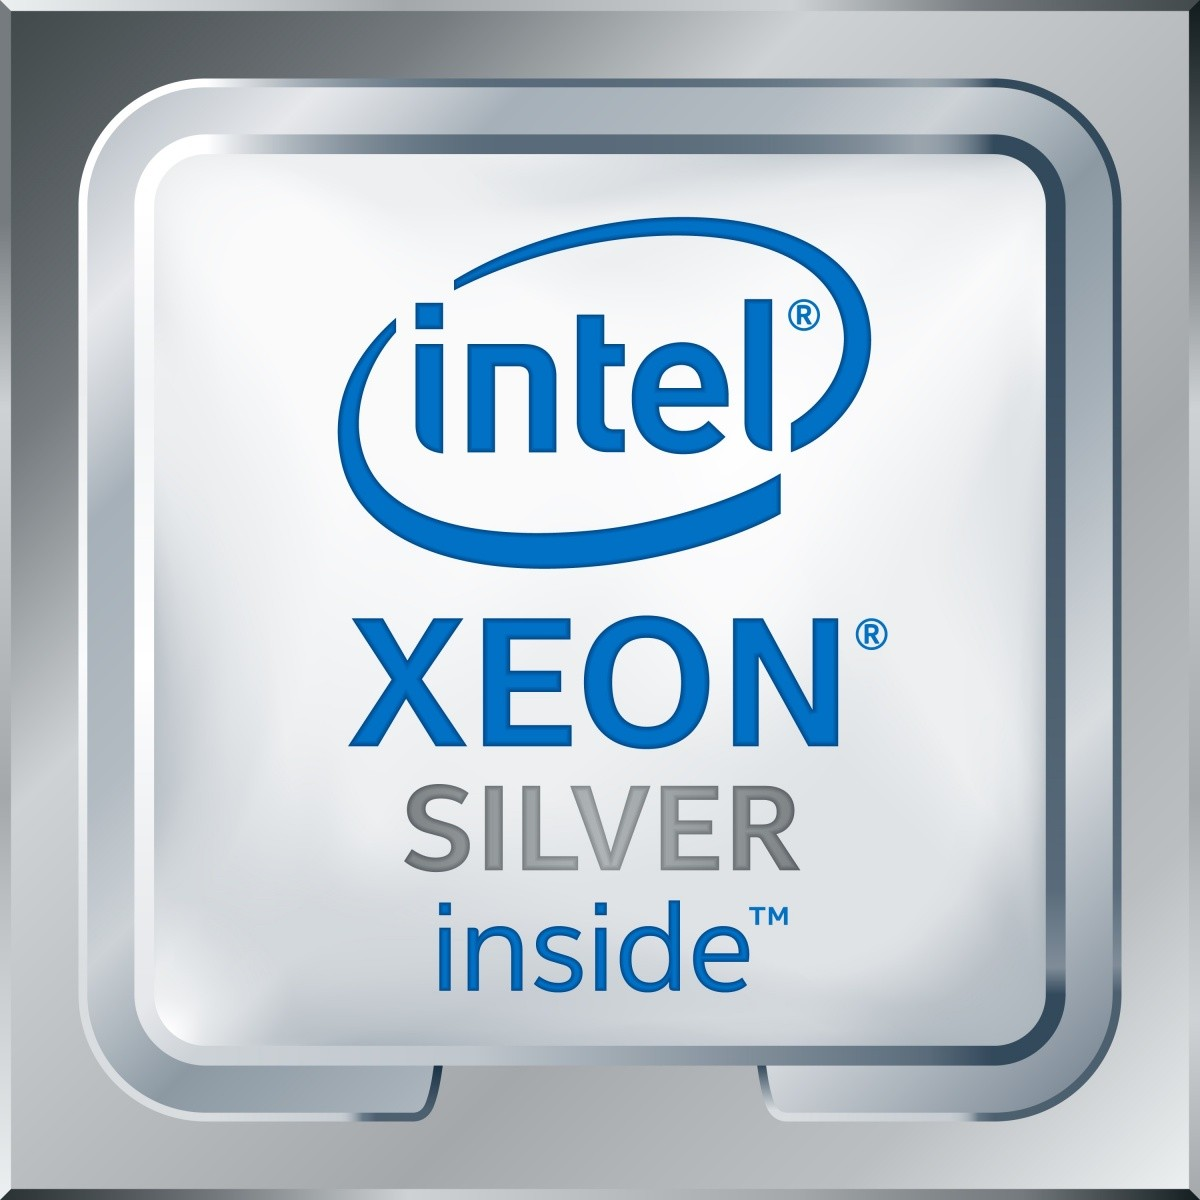 Xeon silver 4116, 12C, 2.1 GHz, 16.5M cache, DDR4 up to 2400 MHz, 85W TDP